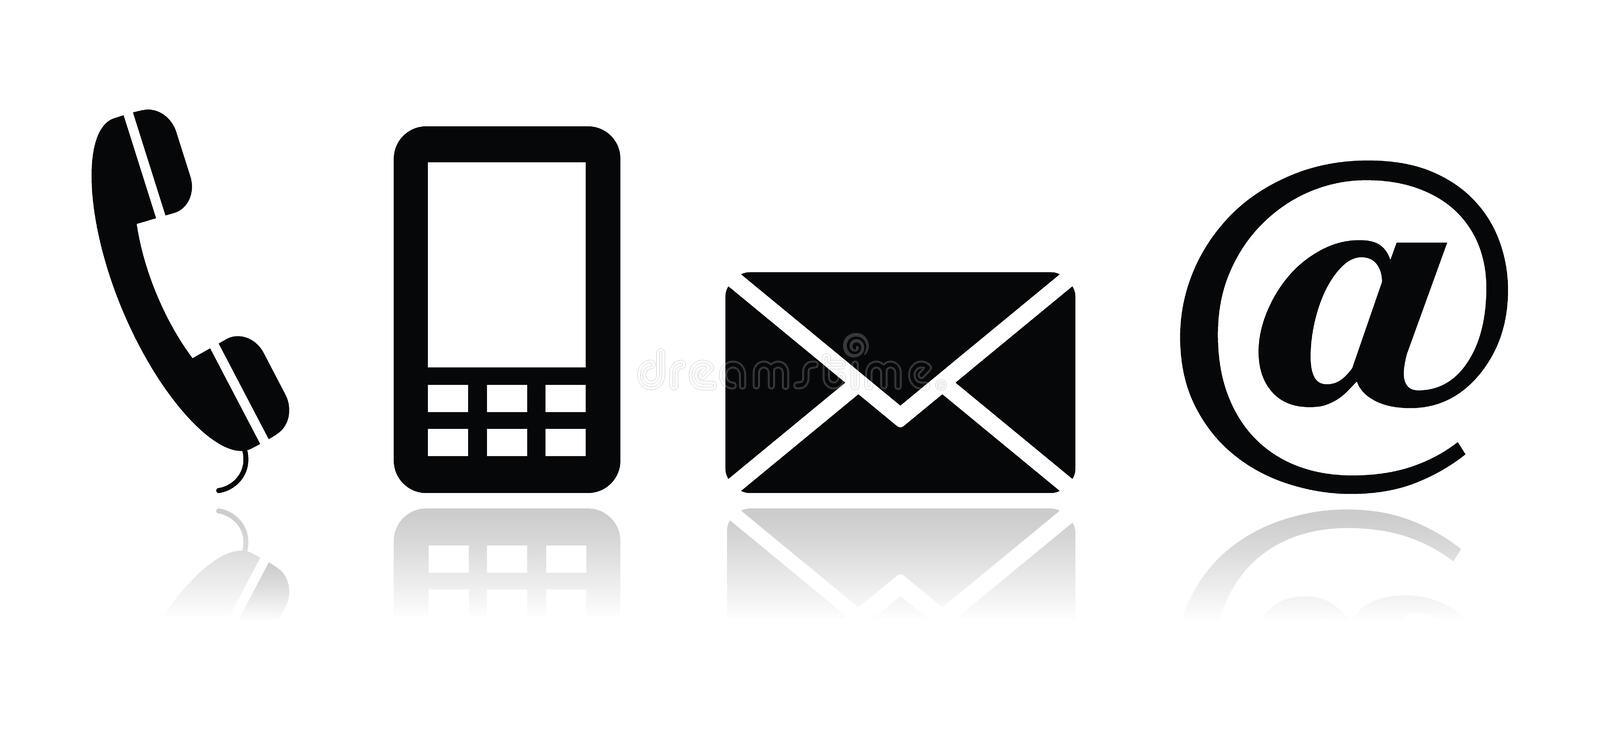 Contact black icons set - mobile, phone, email, en stock illustration